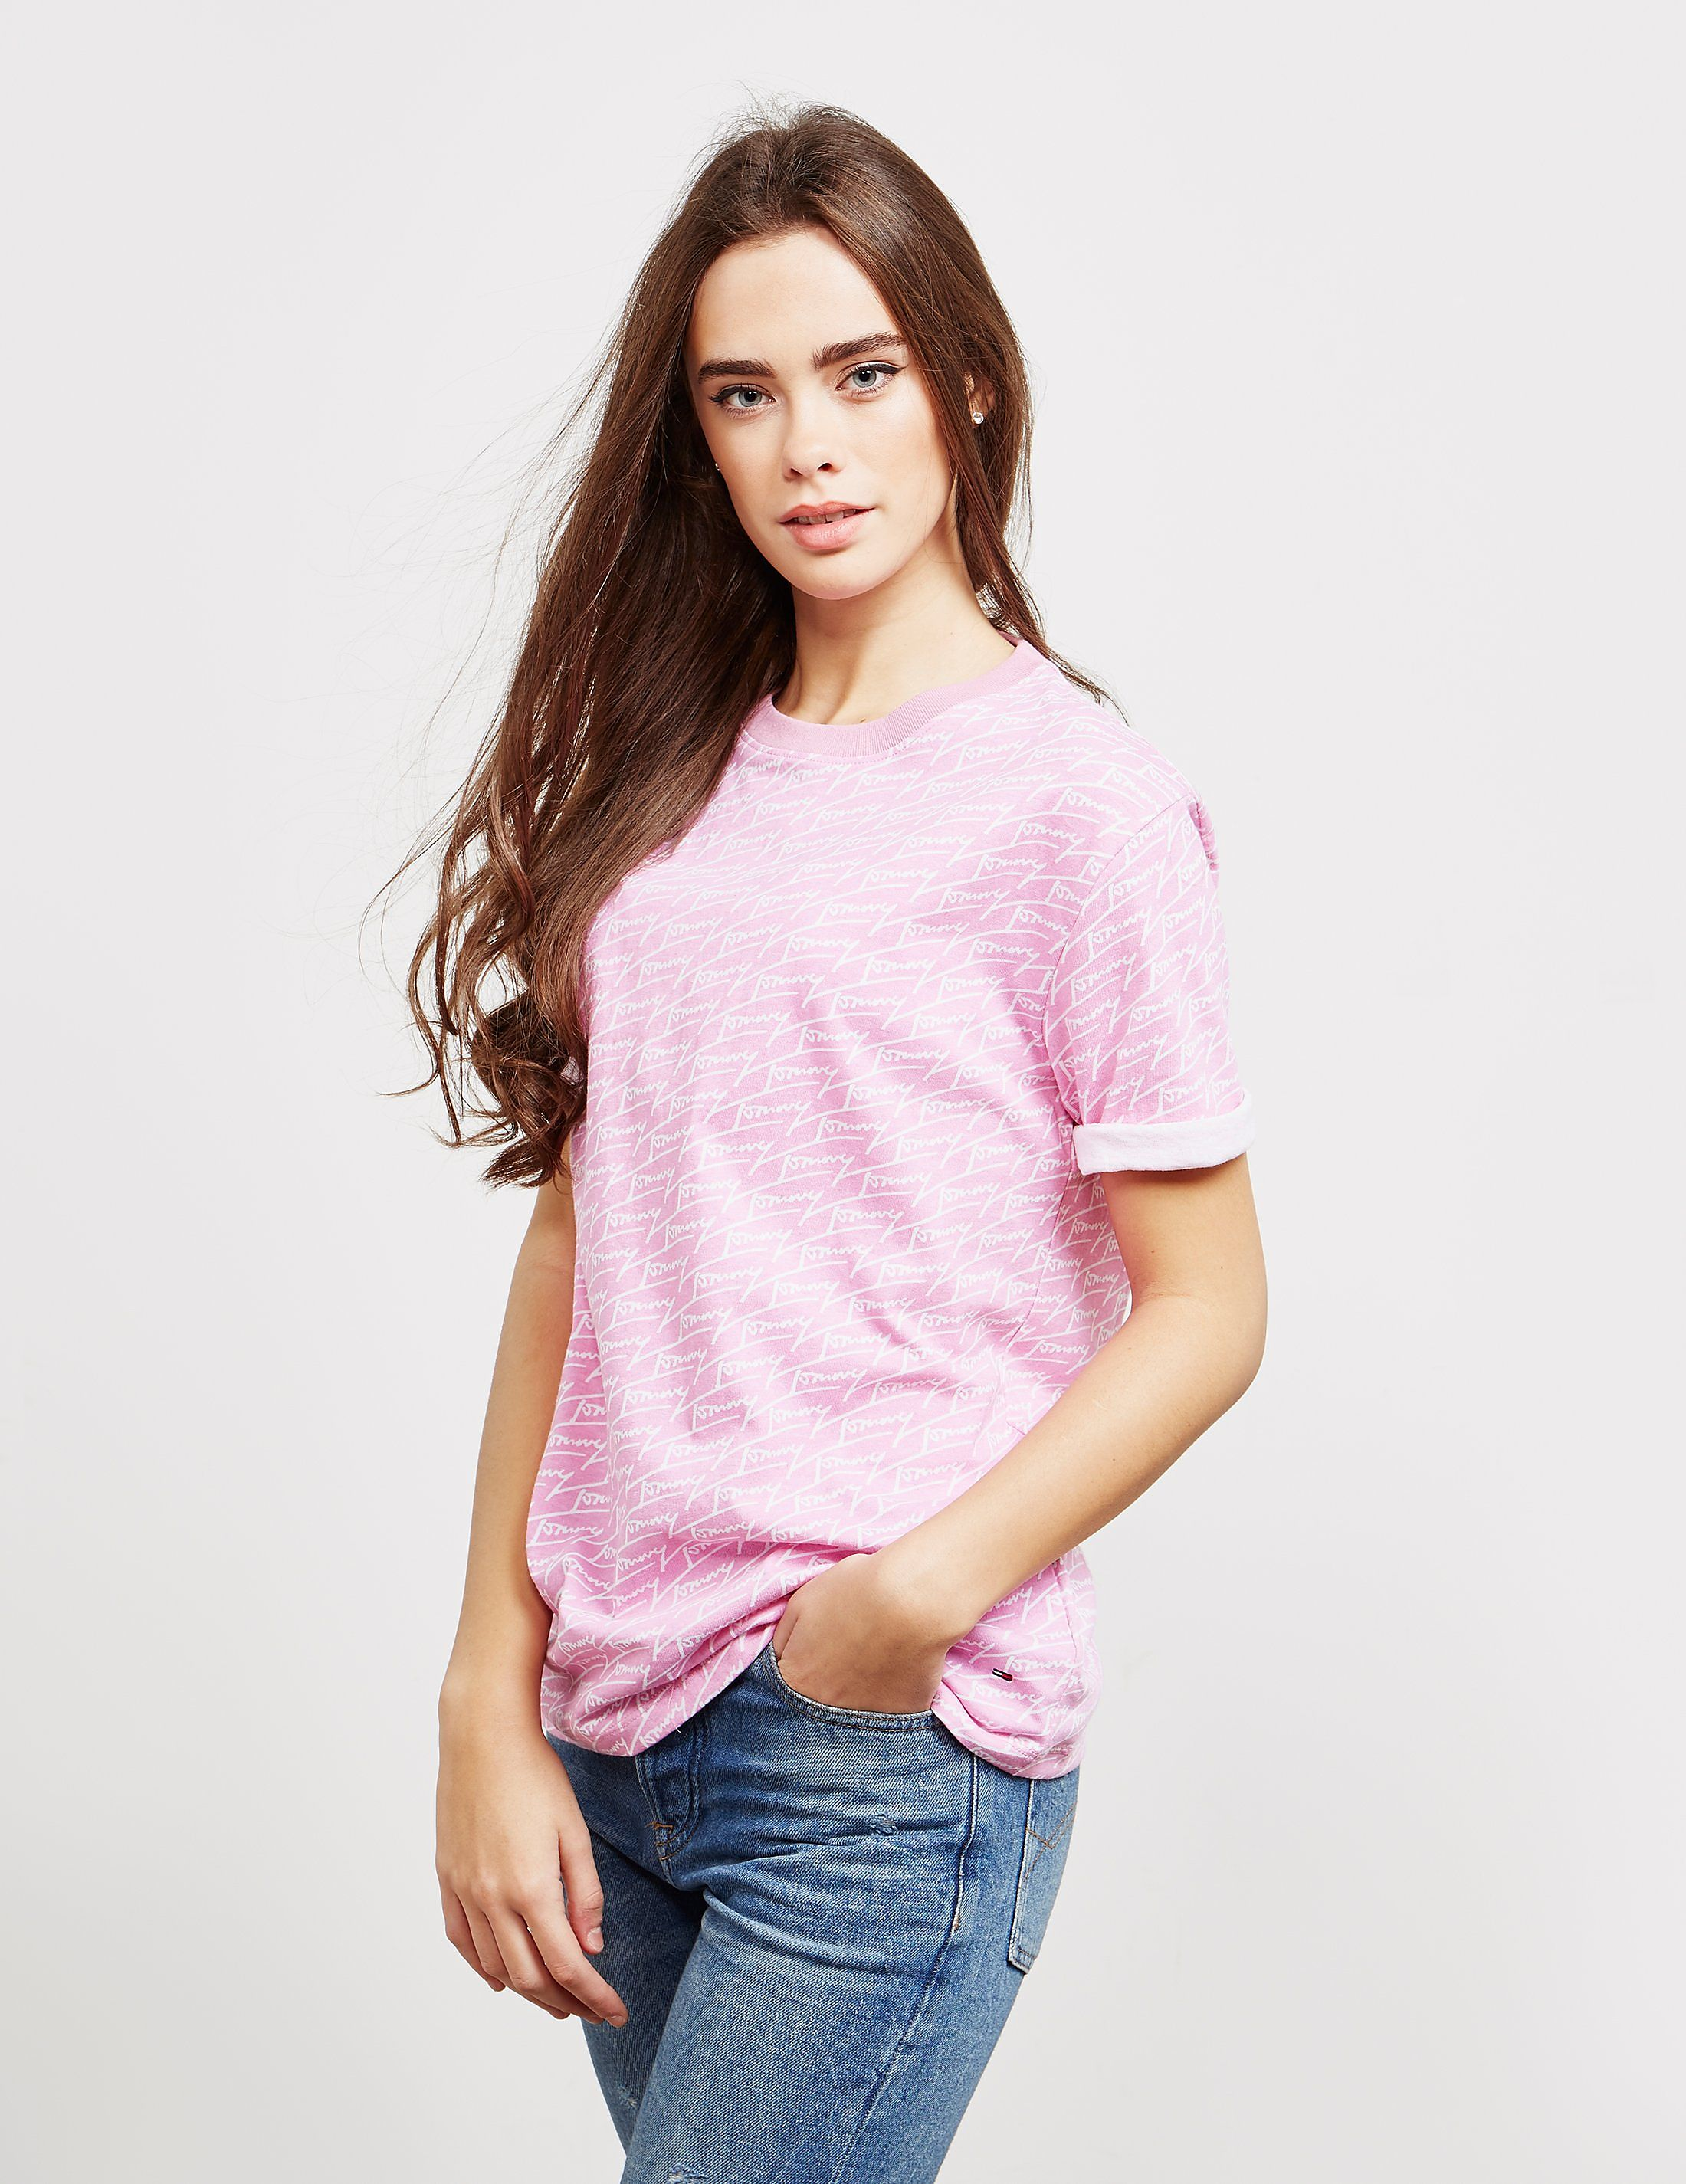 ced7e604 Tommy Jeans Logo Shirt Pink - Aztec Stone and Reclamations